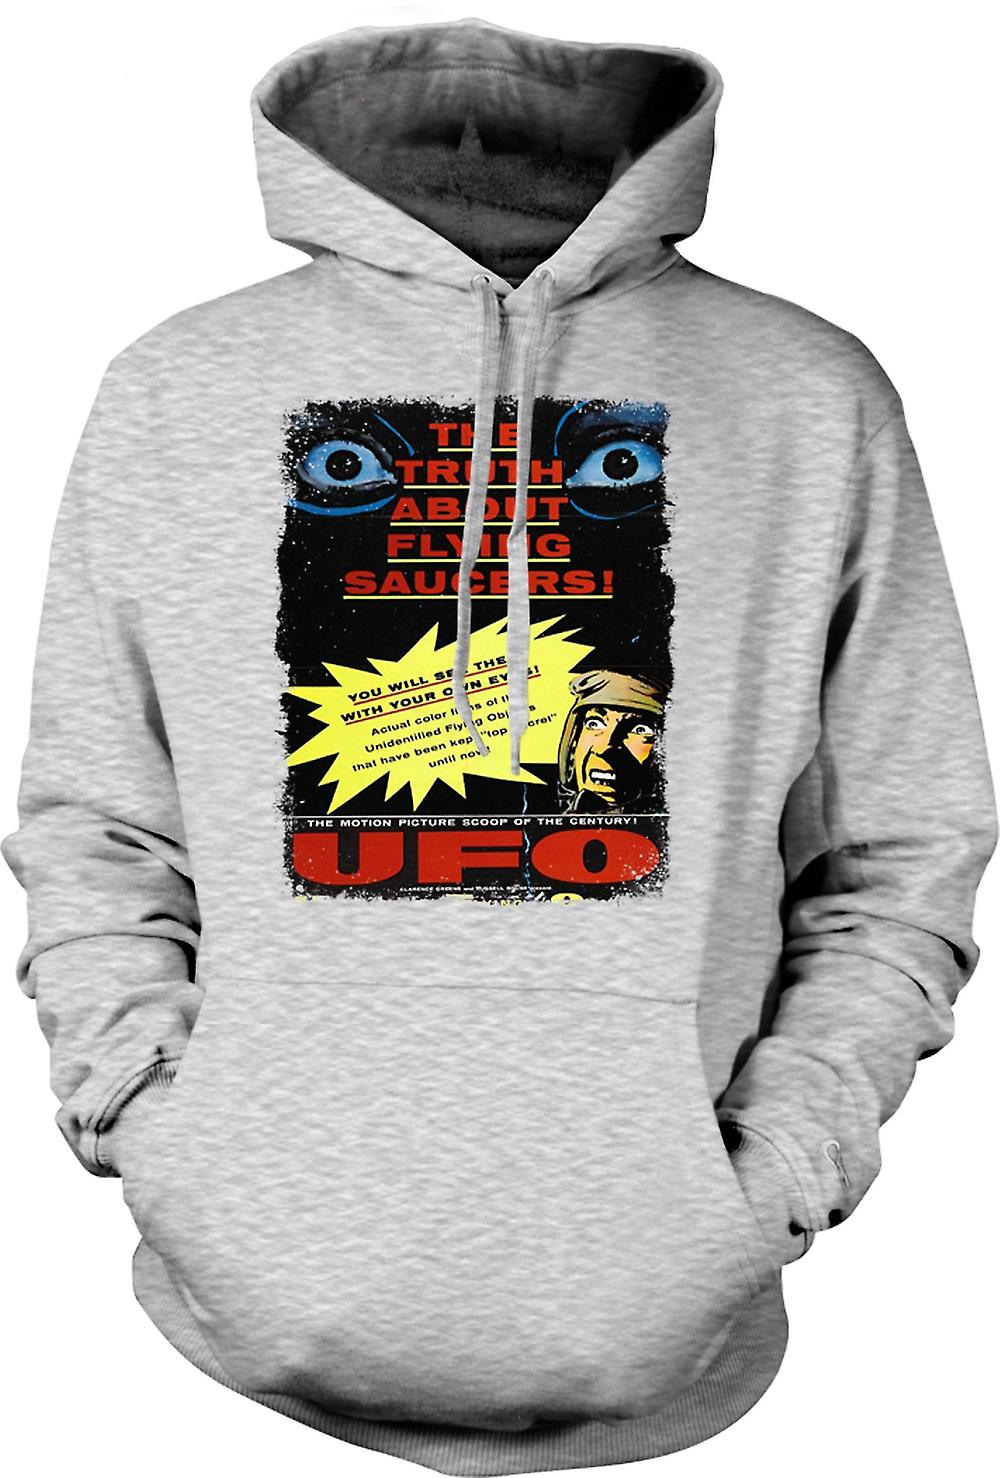 Mens Hoodie - Truth About Flying Saucers Kids